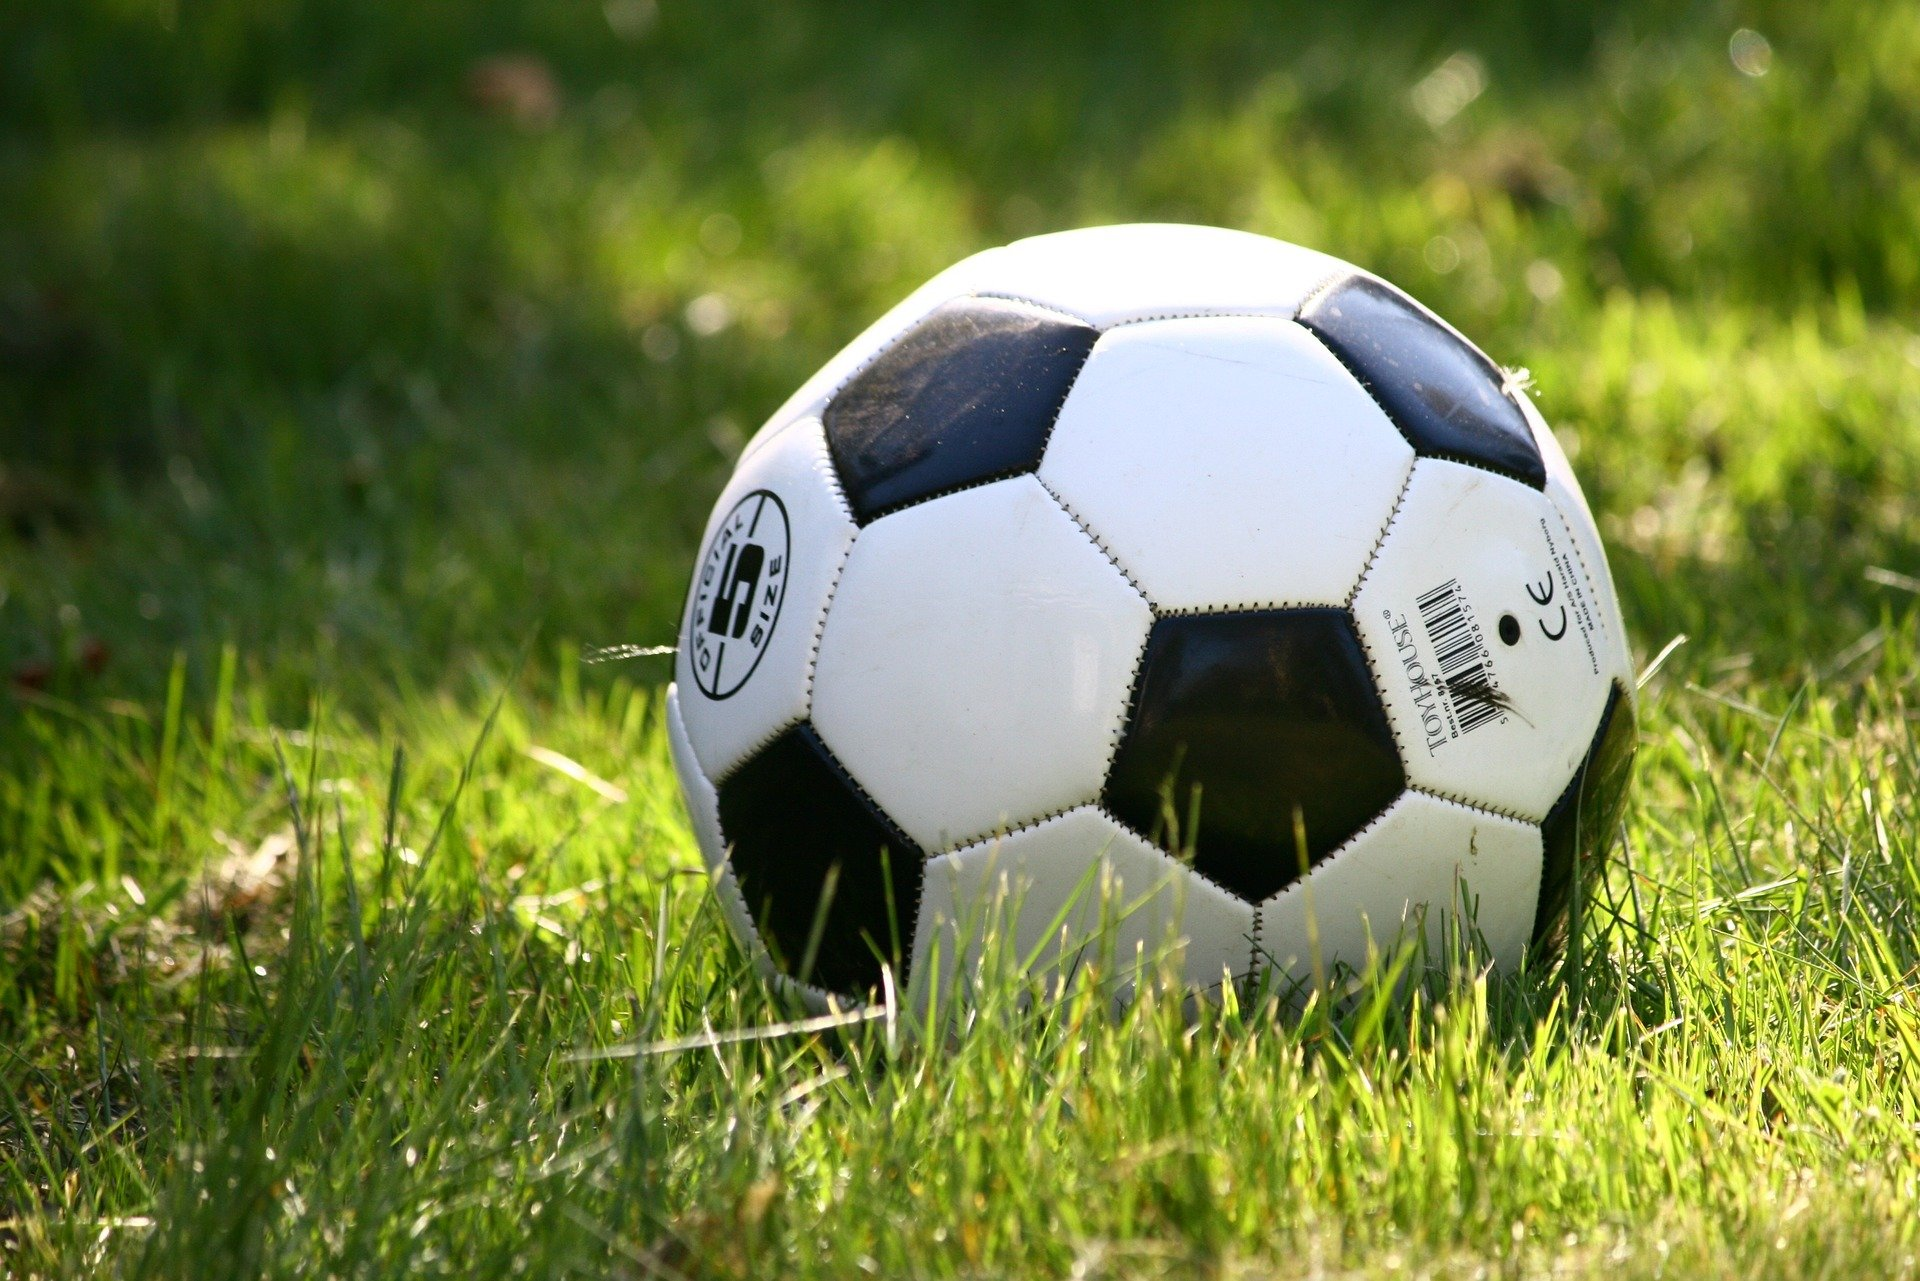 Funding Available for Return of Grassroots Football in England